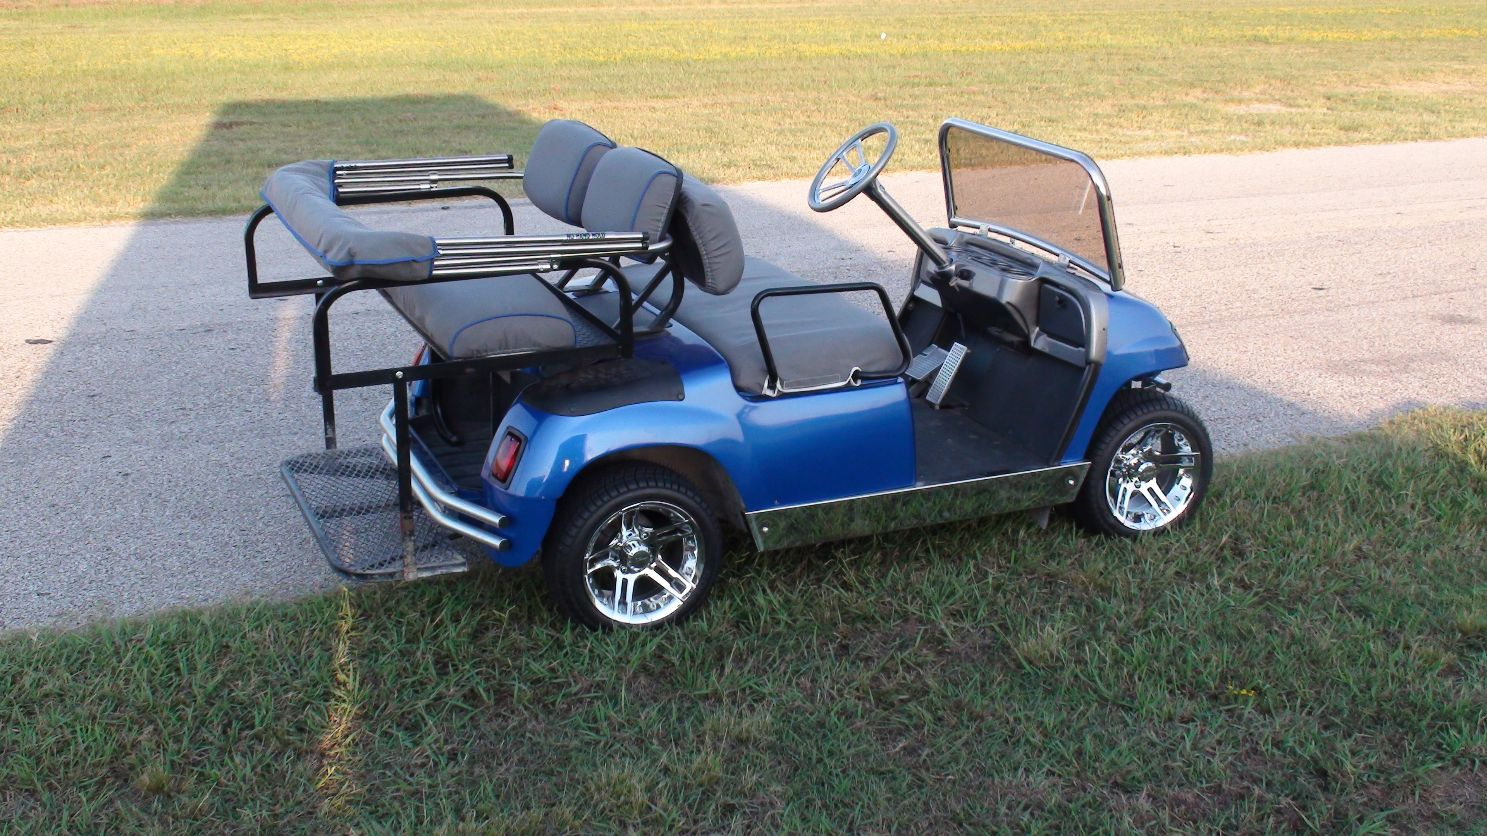 Golf Cart tops roofs canopies|soft convertible|solar Ezgo Golf Cart Precedent Roofs on radio install golf cart roof, club car roof, ezgo marathon roof, ezgo extended roof, golf cart extended roof, yamaha golf cart roof, custom golf cart roof, universal golf cart roof, 80-inch golf cart roof, rhino golf cart roof,